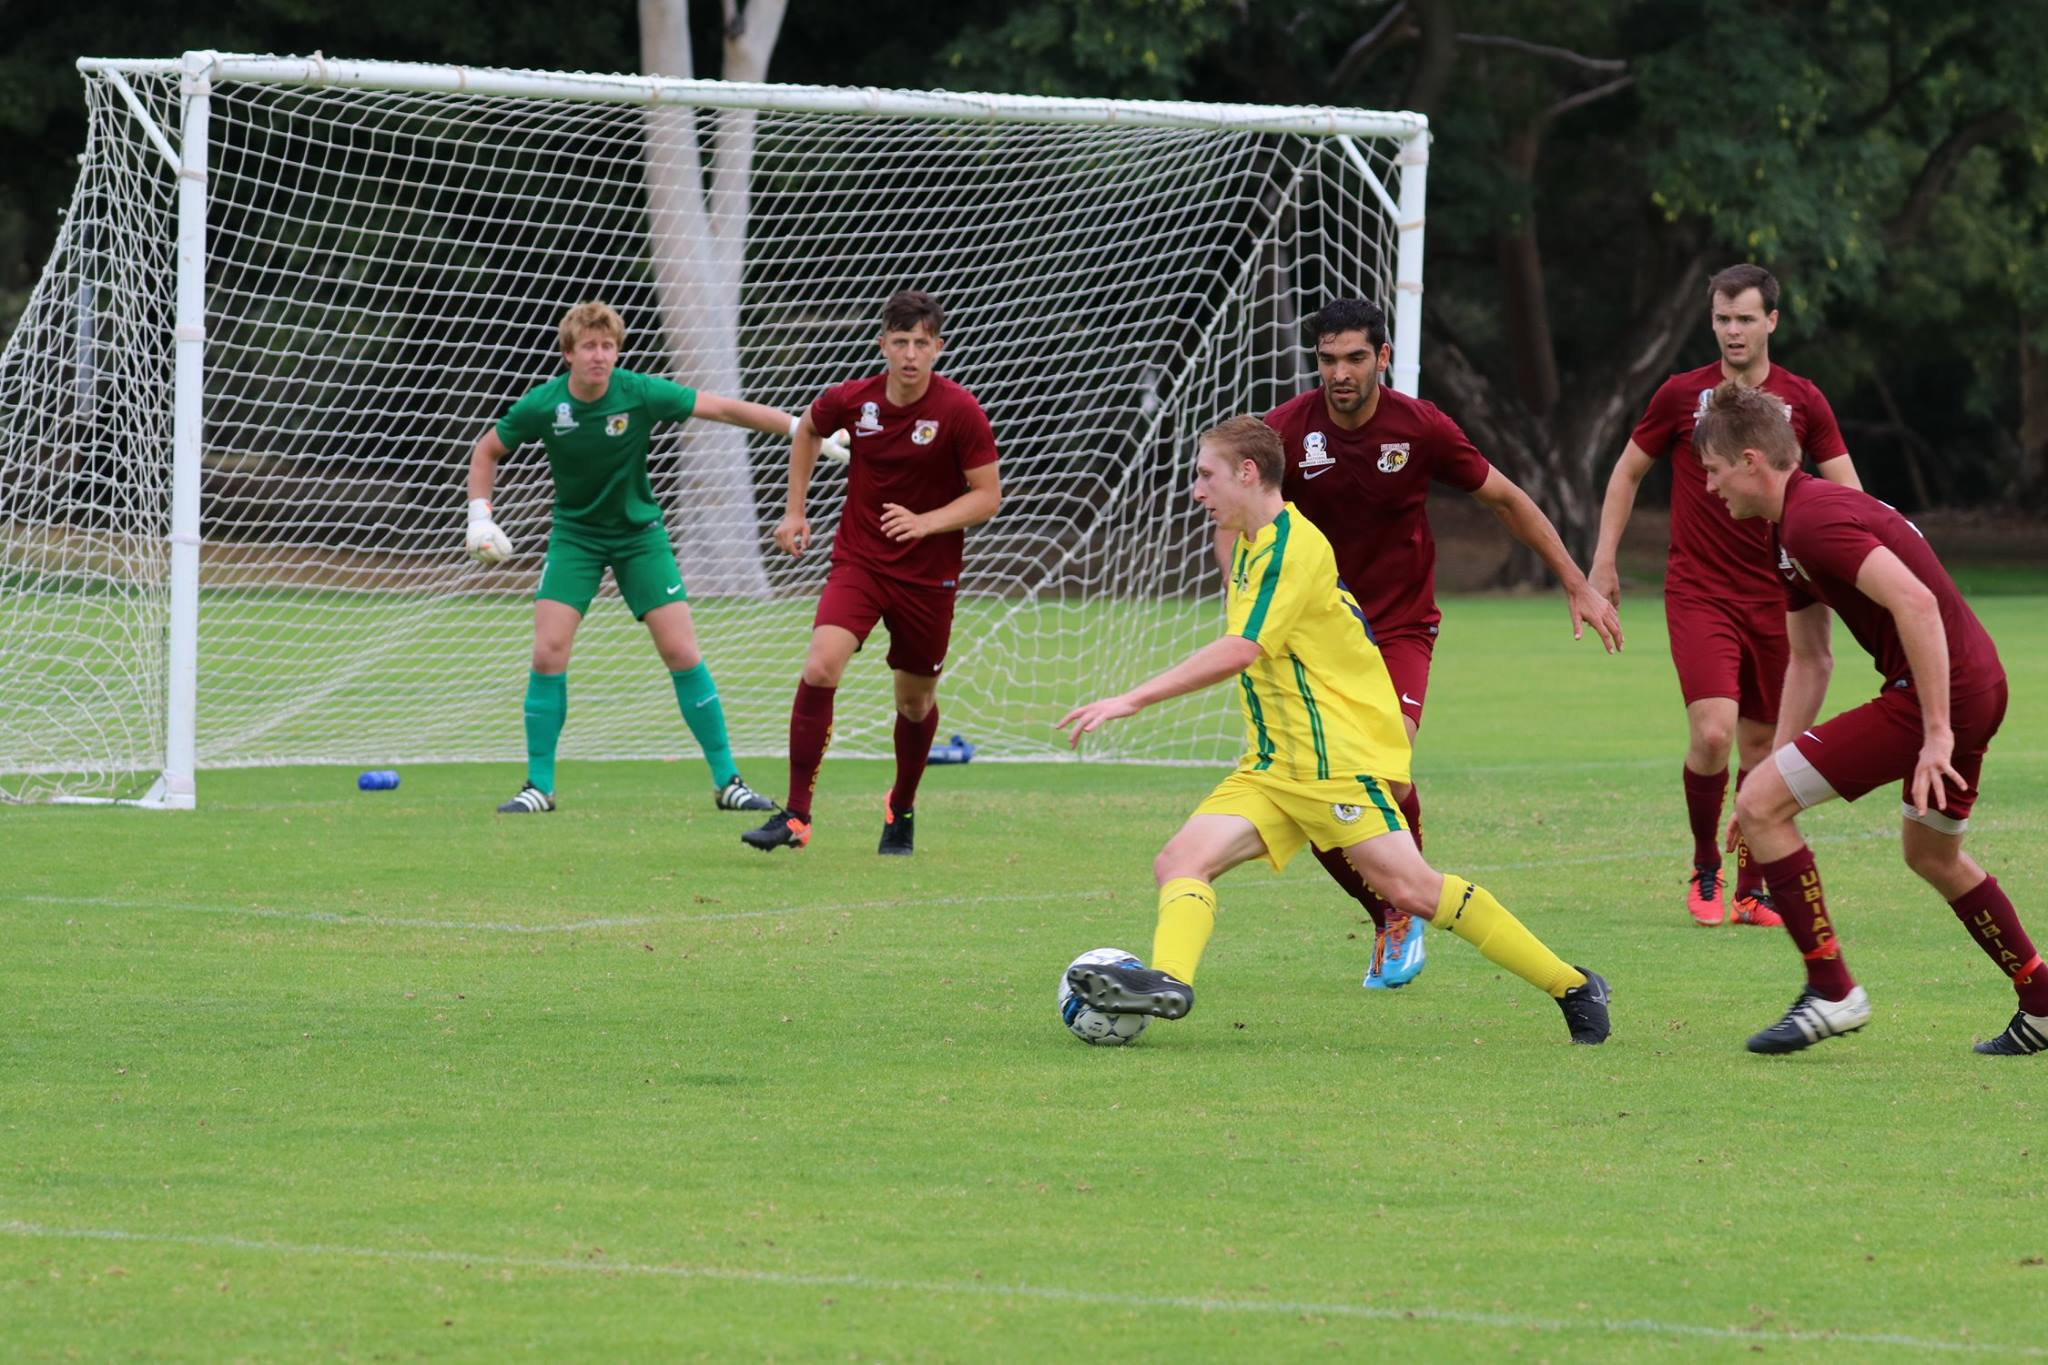 ALEX KRETOWICZ BAGGED A HAT-TRICK AGAINST SUBIACO - CREDIT: GABRIELE MALUGA